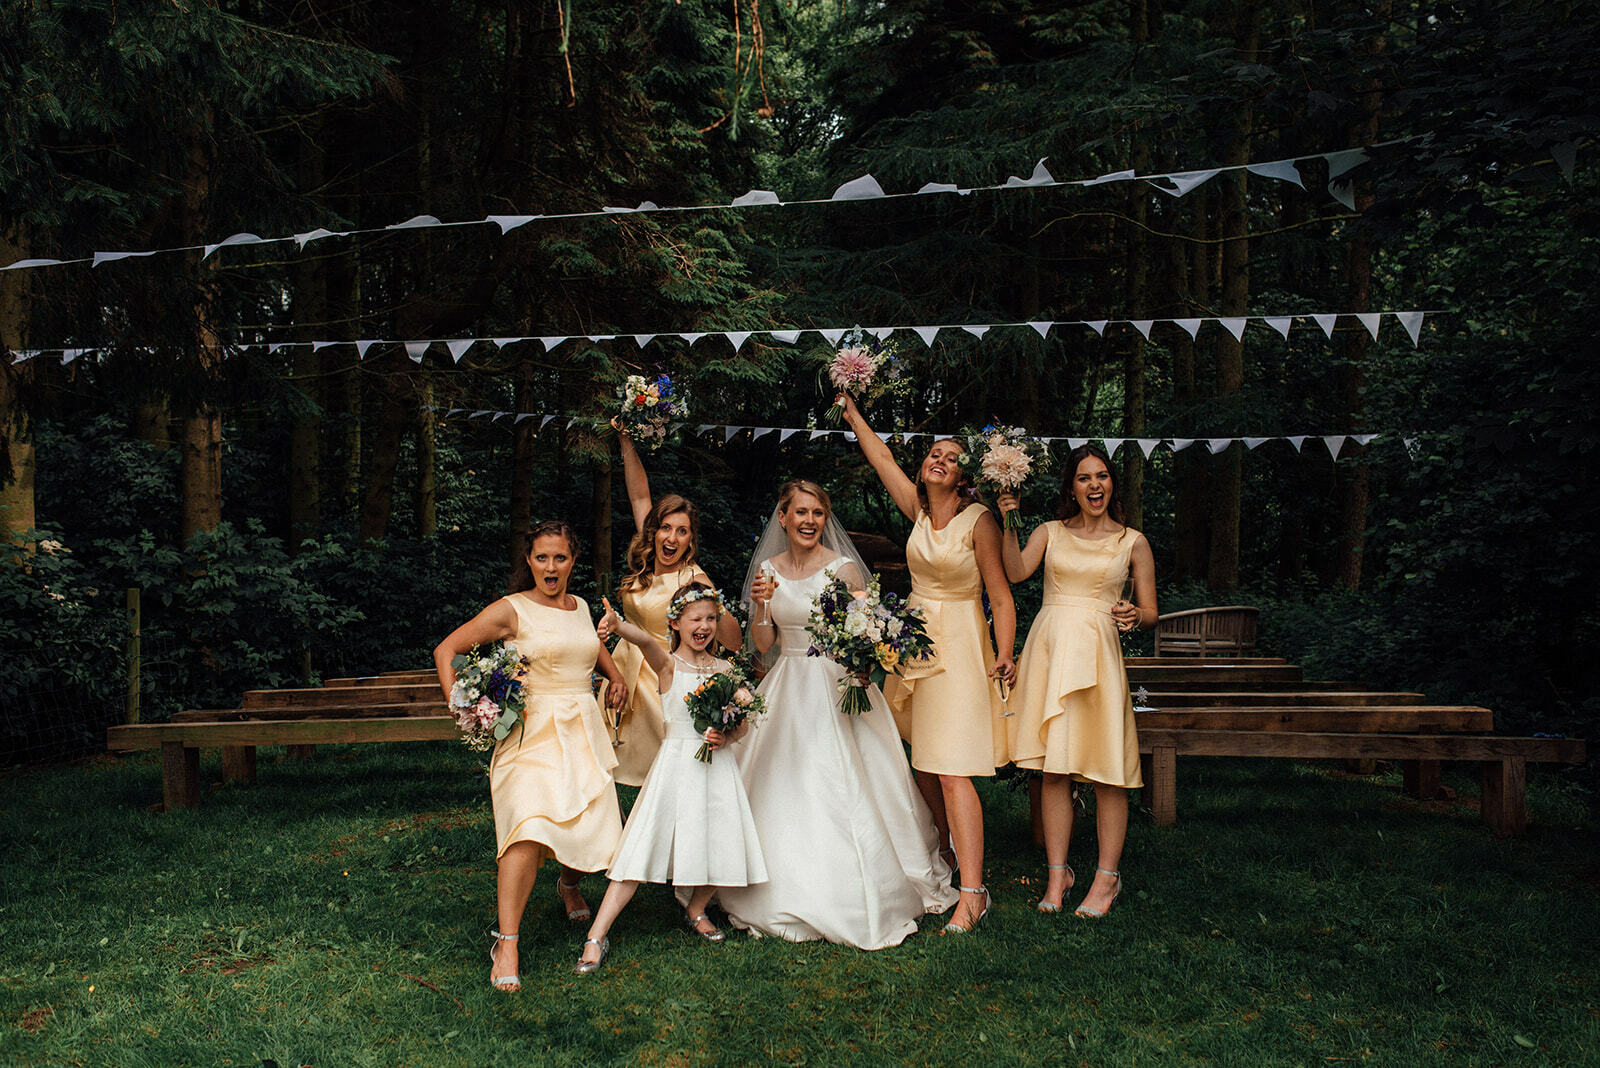 Bride and her bridesmaids do a silly pose in the woodland wedding ceremony area of Lineham Farm